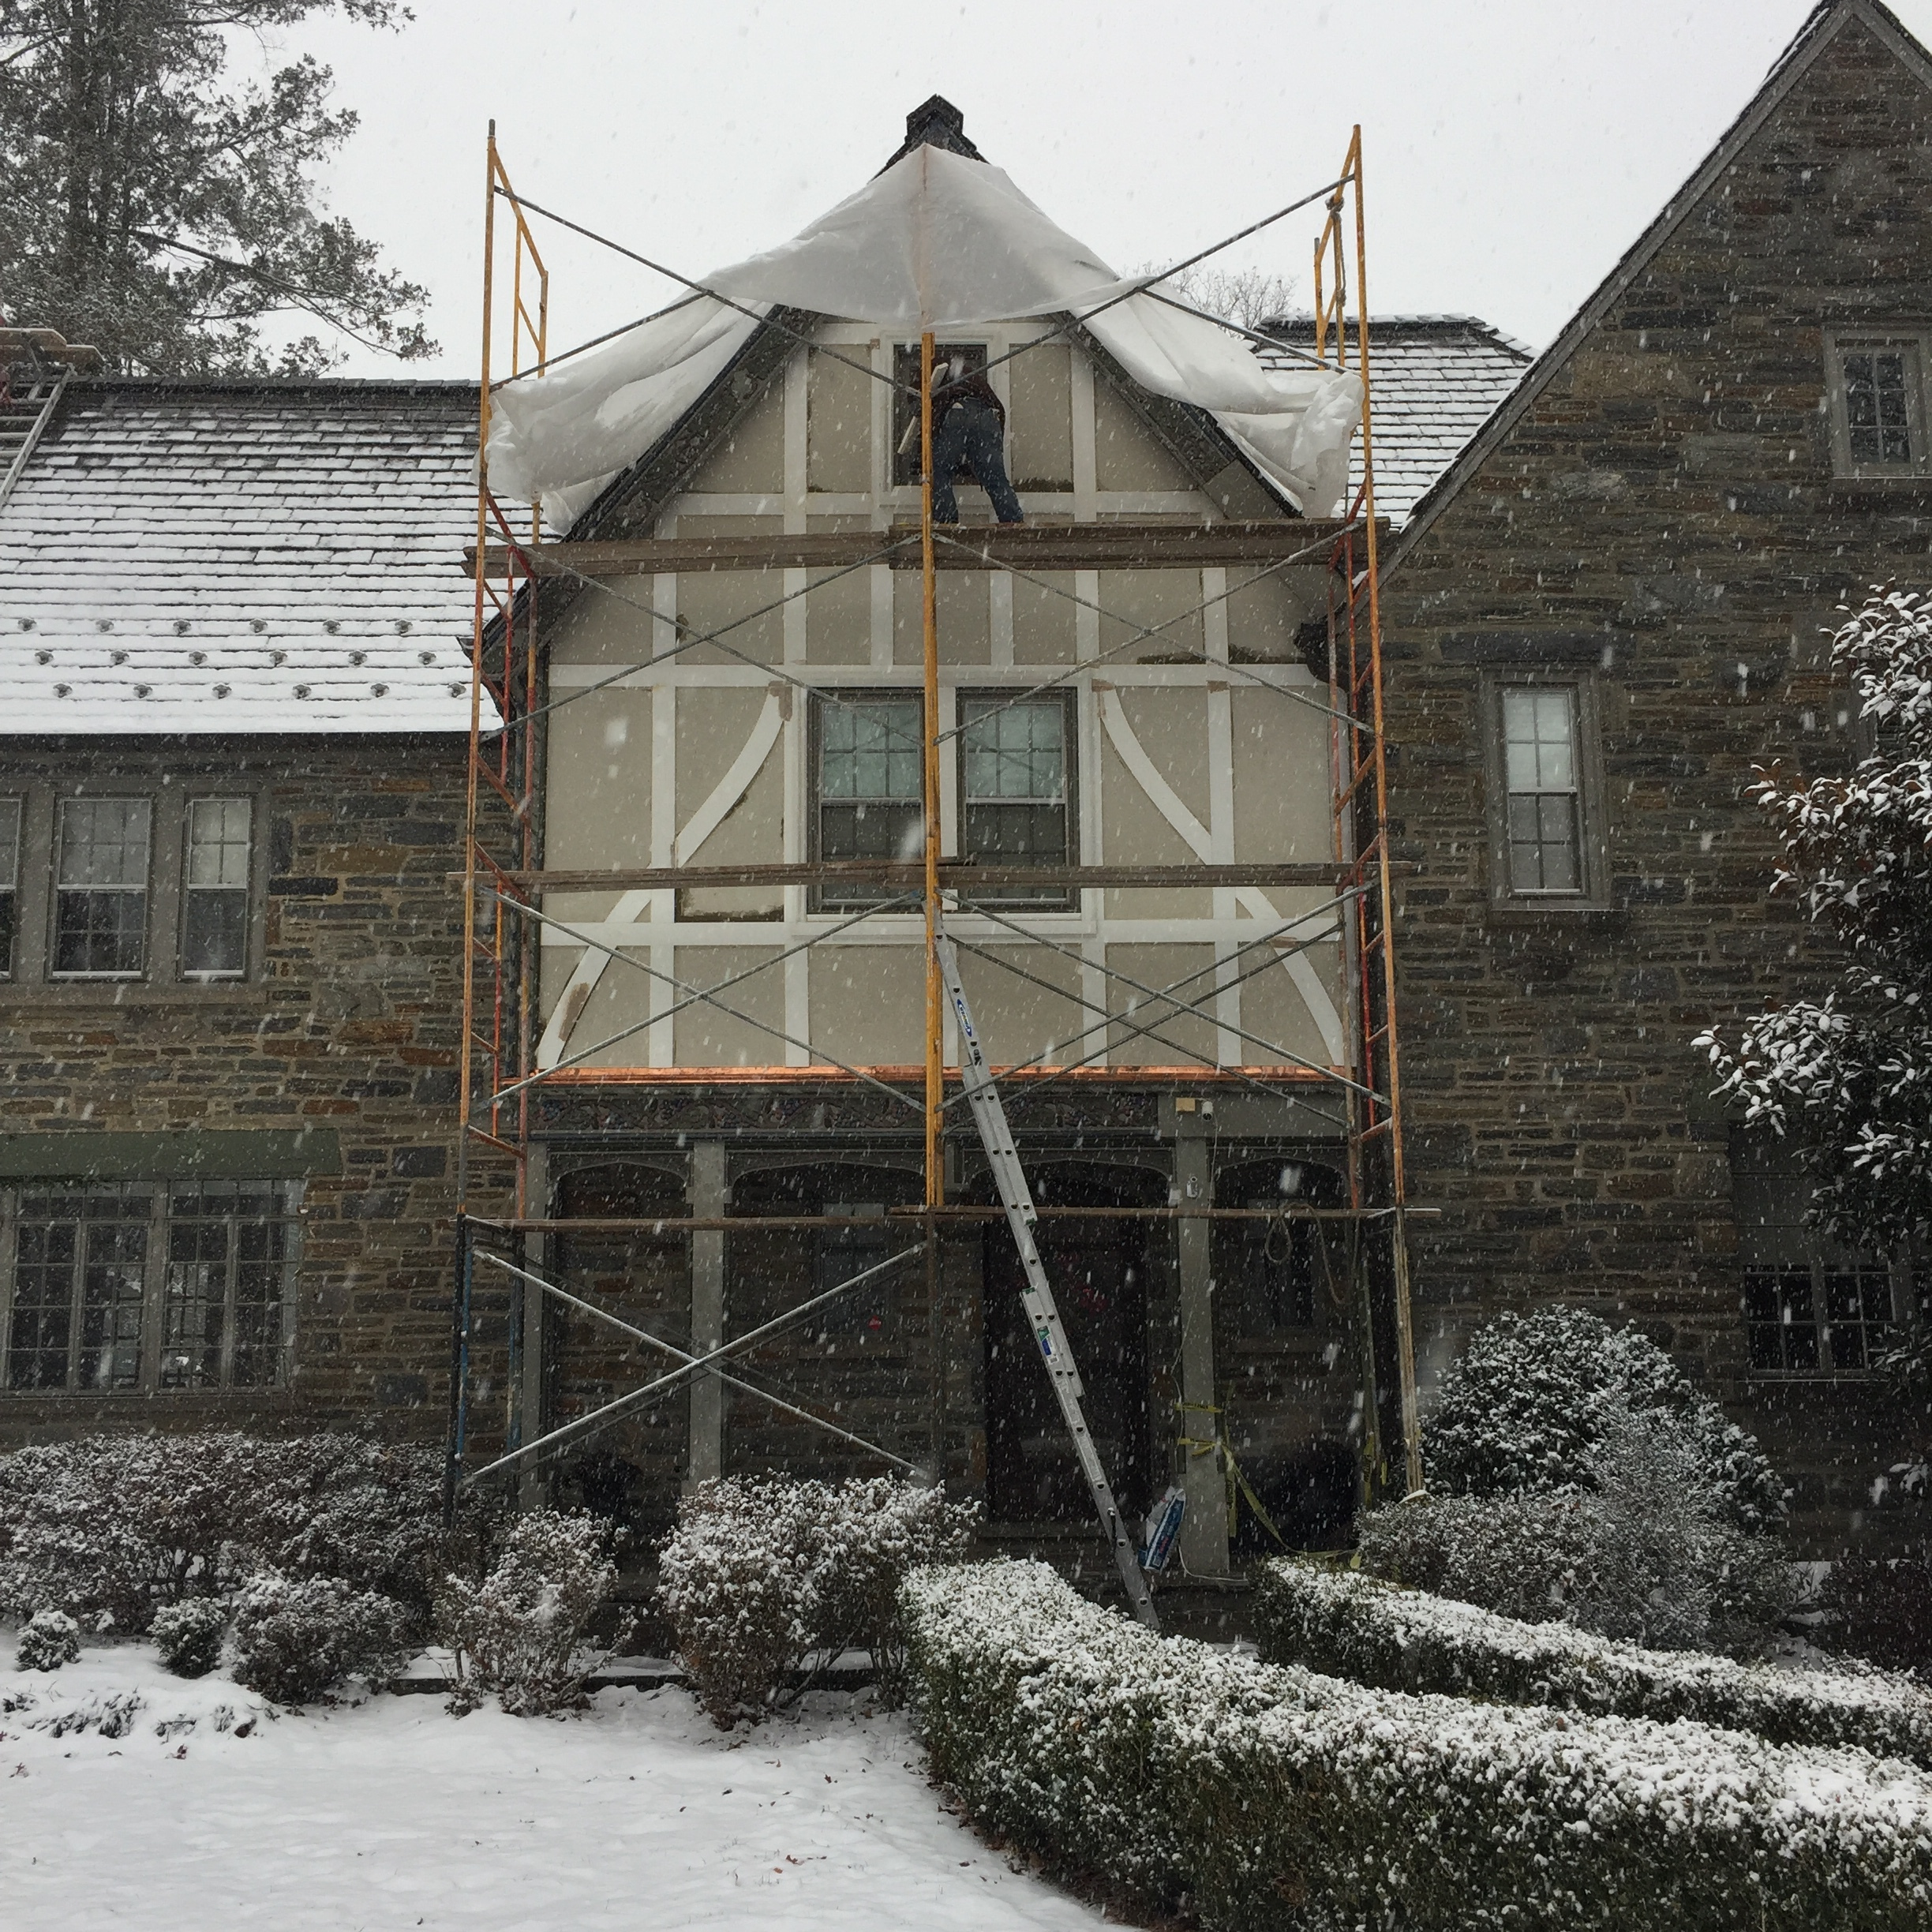 A blizzard passed by just as we were taking the scaffolding down for the winter. This is a partially completed project in which we have already replaced all the vertical timbers, which had rotted out, as well as re-flashed any adjoining metalwork, now in copper; and are currently hand carving irrevocably lost sections of ornamental woodwork, located at the top and bottom of the stucco façade. This spring we will both re-stucco the cracked façade and install the replicated woodcarvings.